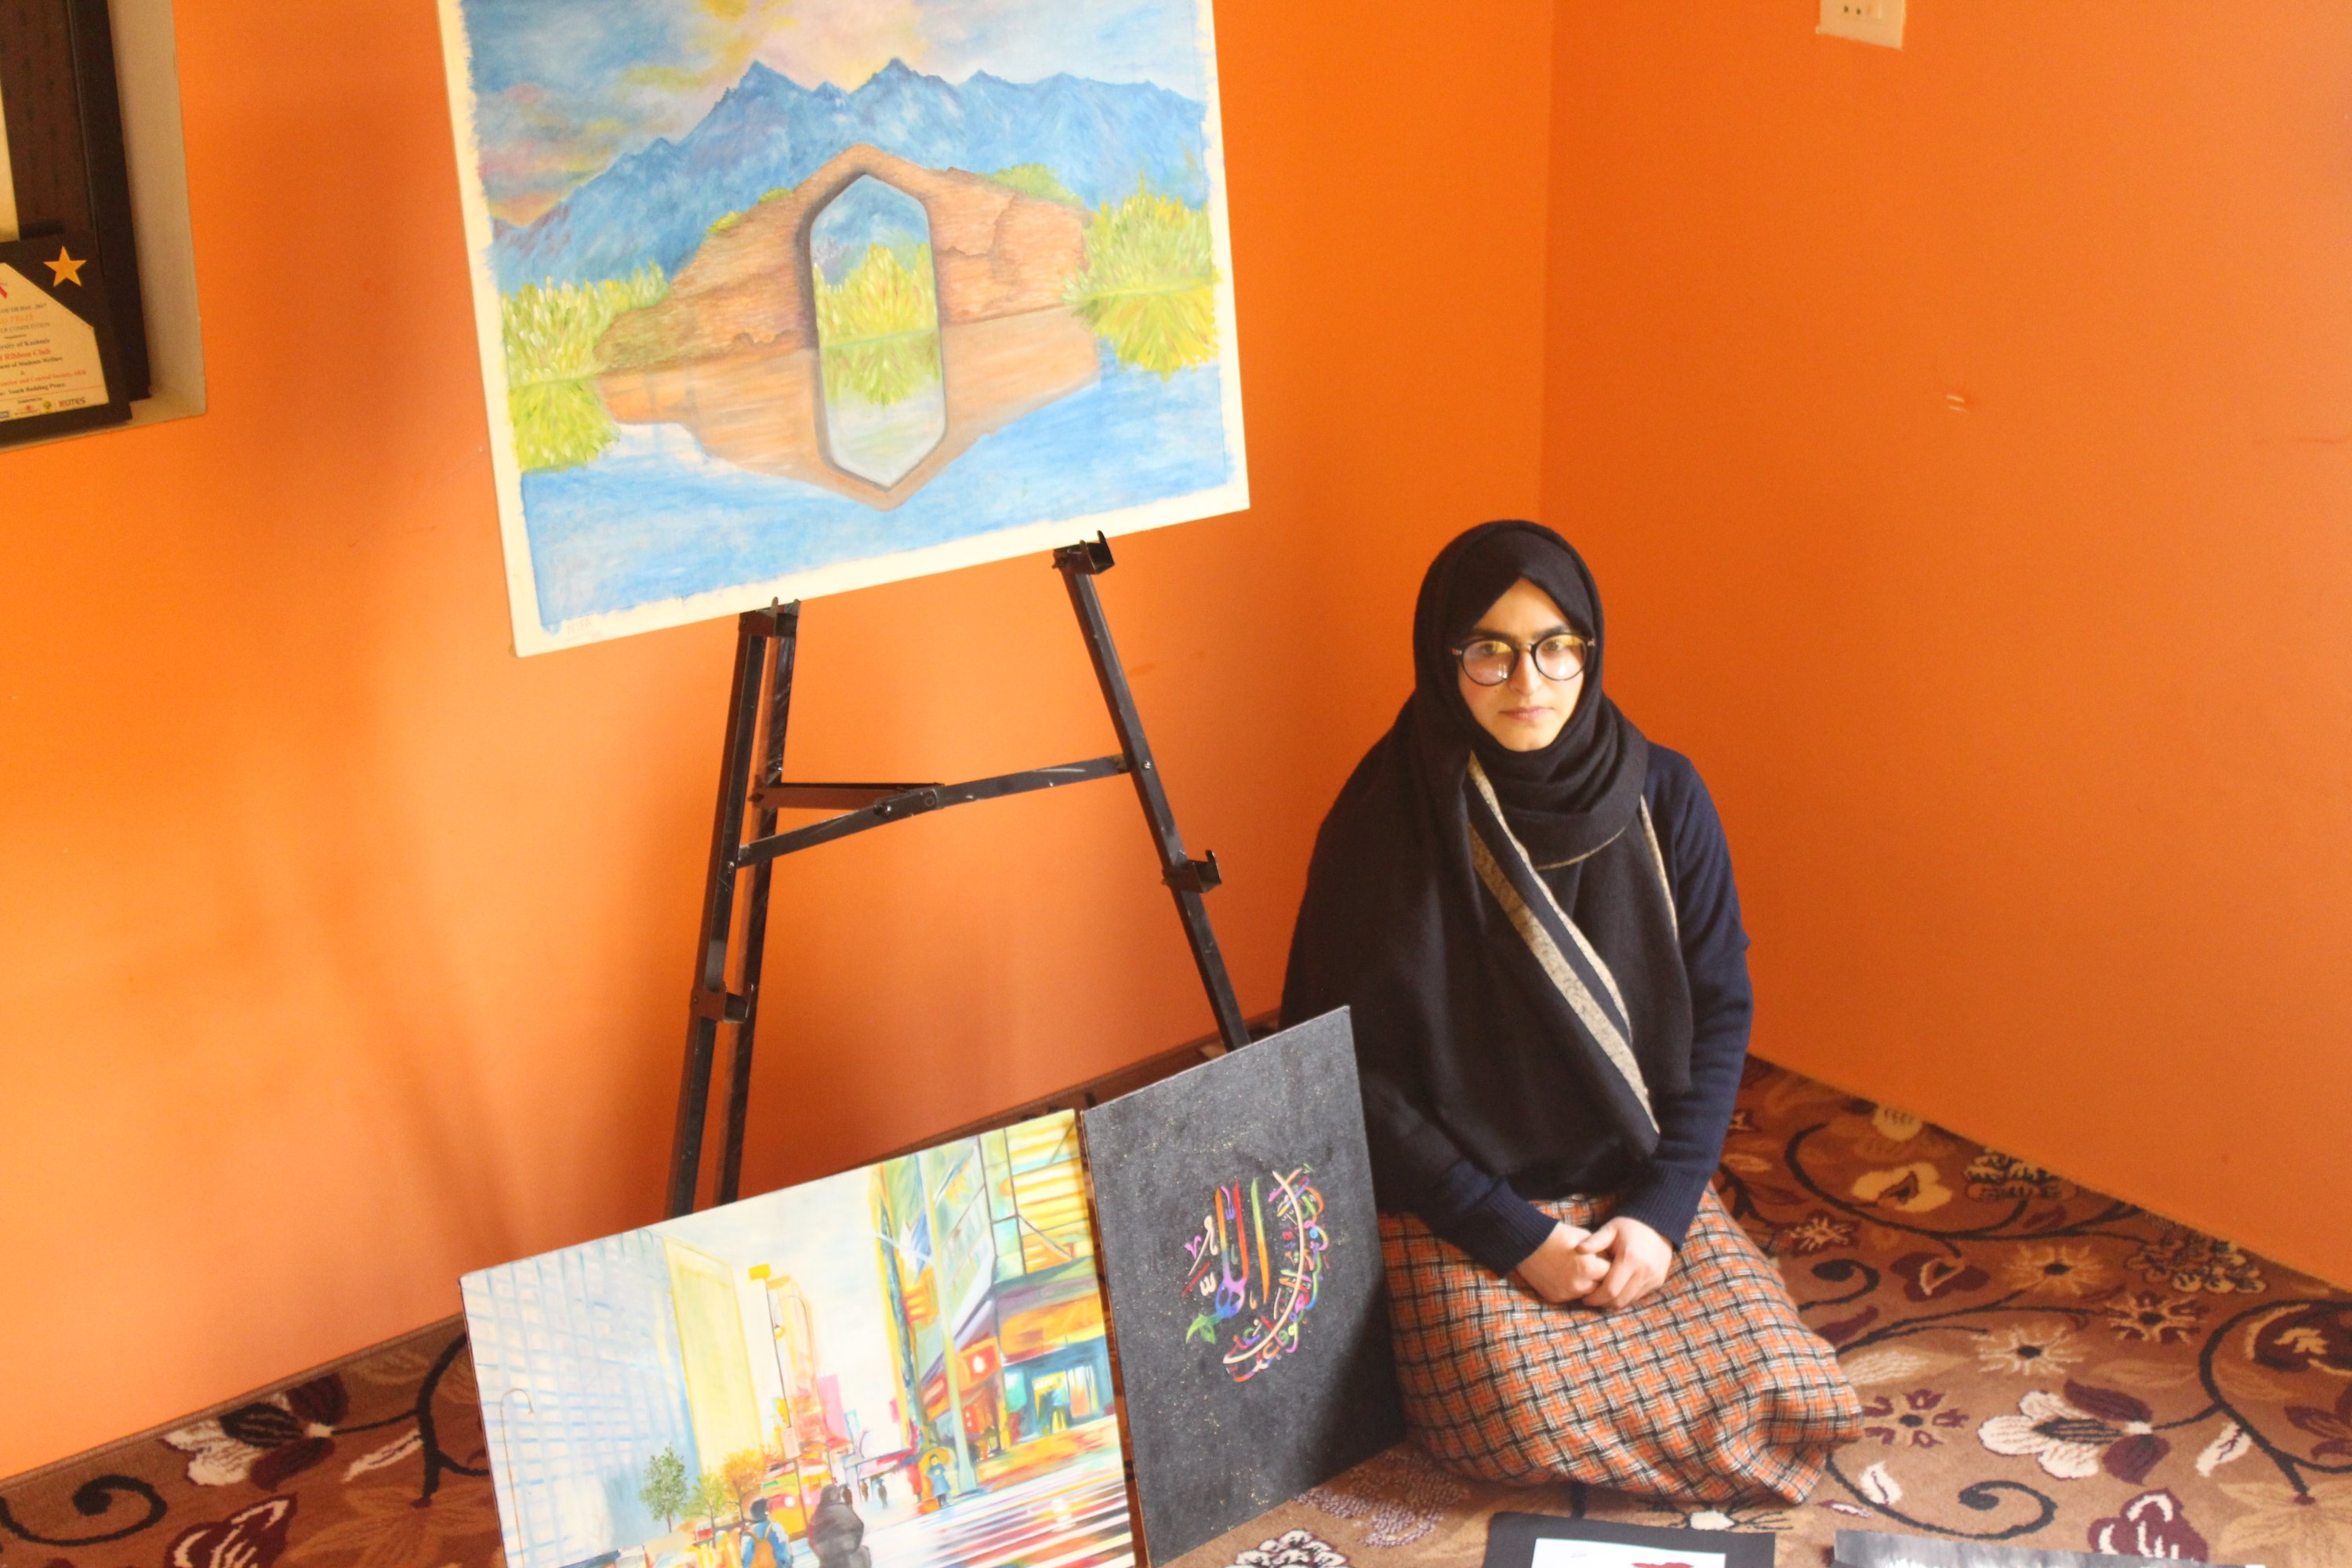 Afifa Makhdoomi poses with her works at her home in Kashmir,  April 1, 2021. (AA Photo)